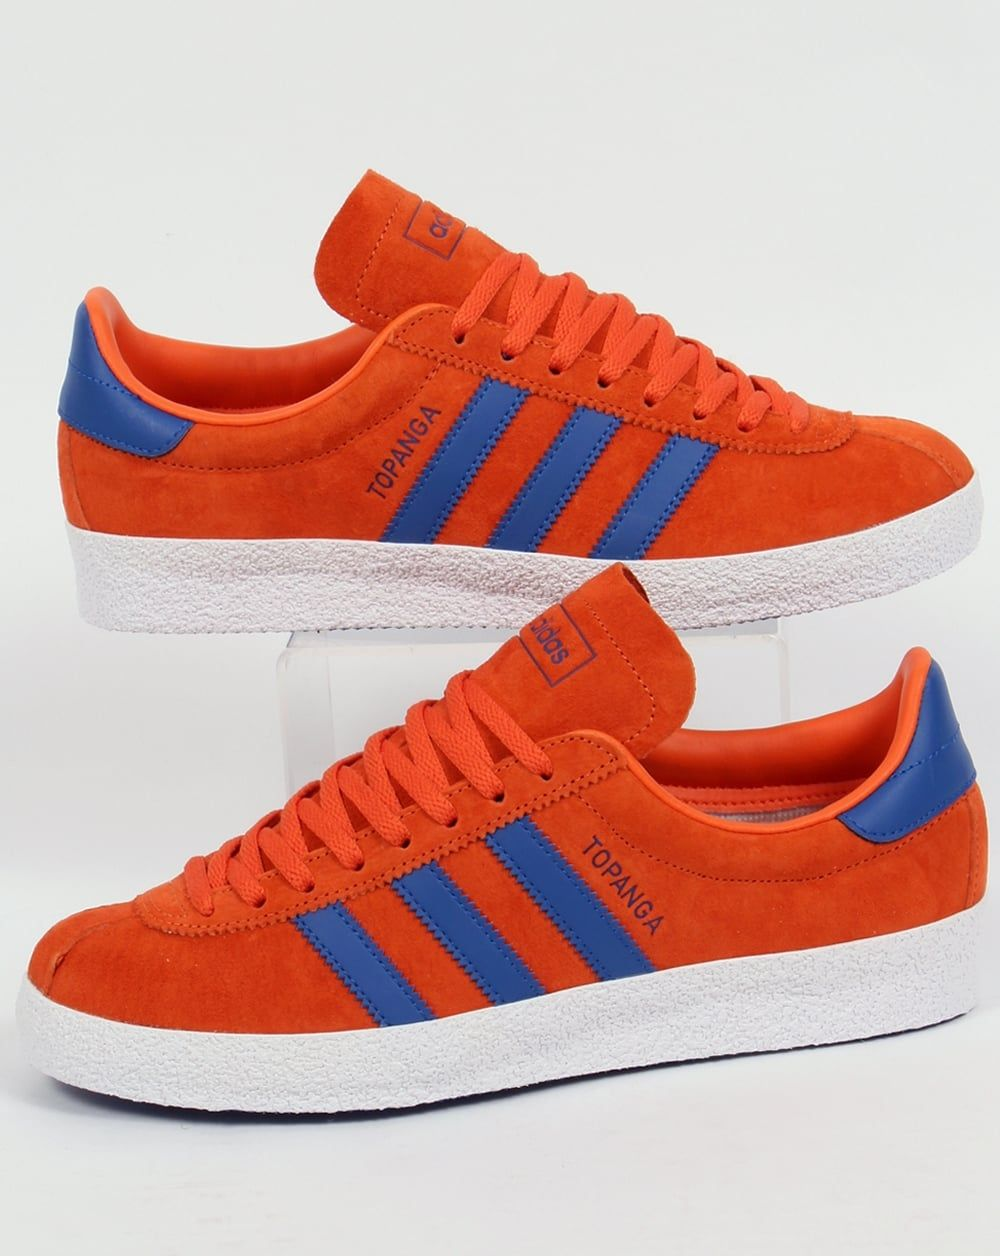 new concept ad534 85960 Adidas Topanga Trainers Craft Orange Royal Blue,originals,shoes,mens, sneakers